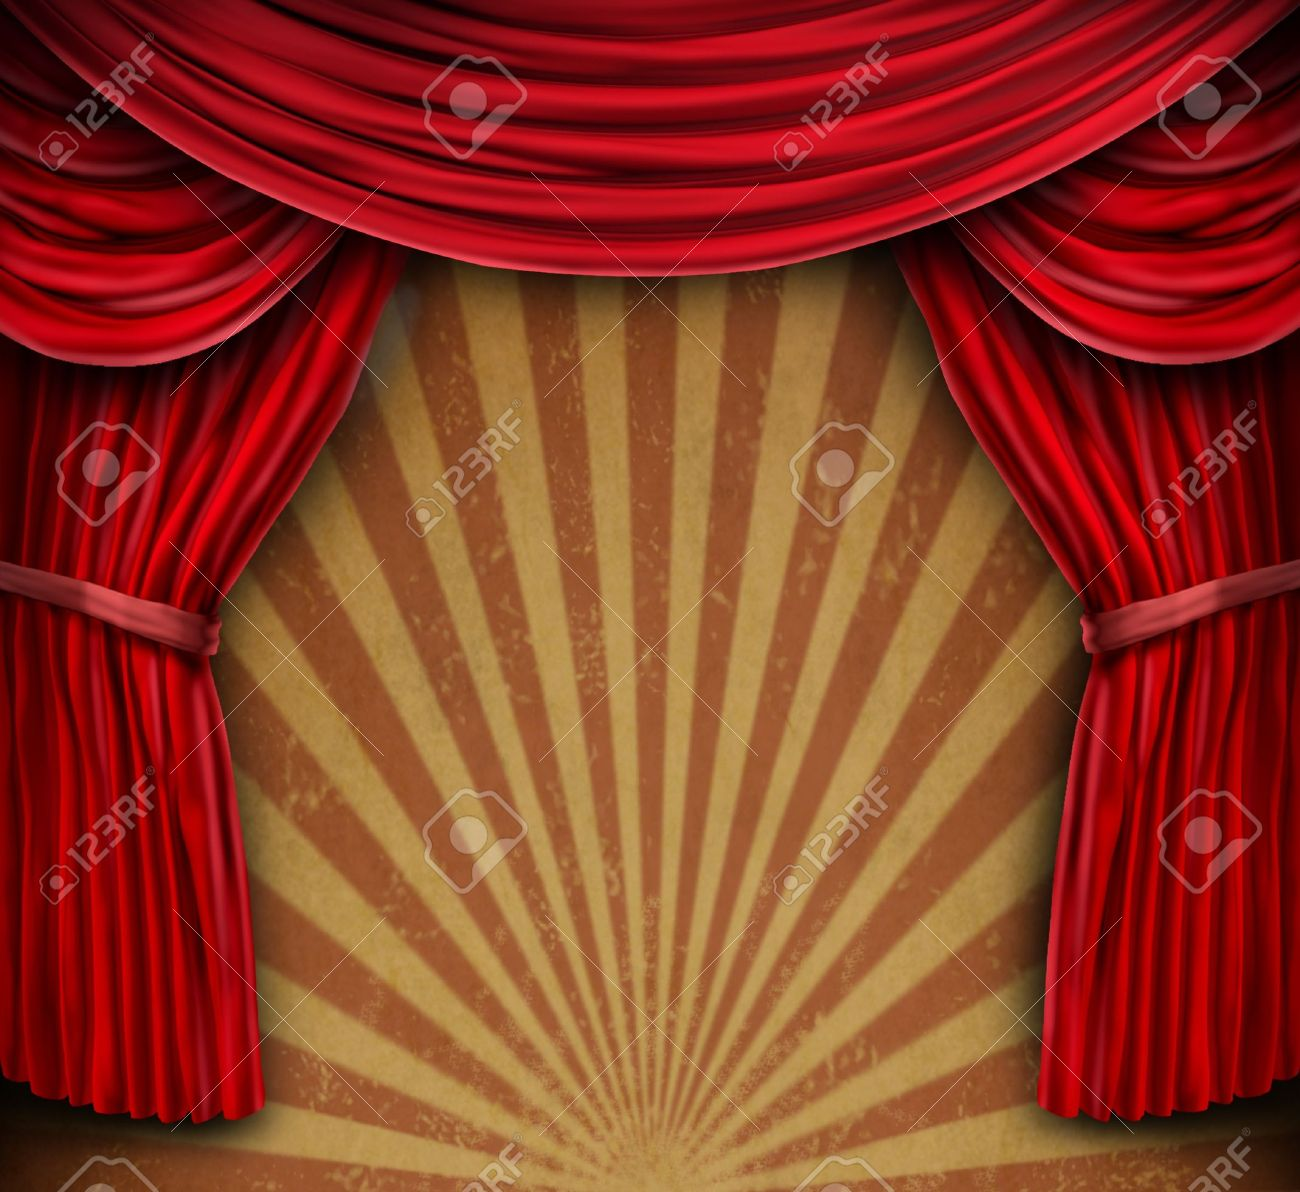 Red Velvet Curtains Or Drapes On An Old Grunge Wall With A Radial Sun Burst Design